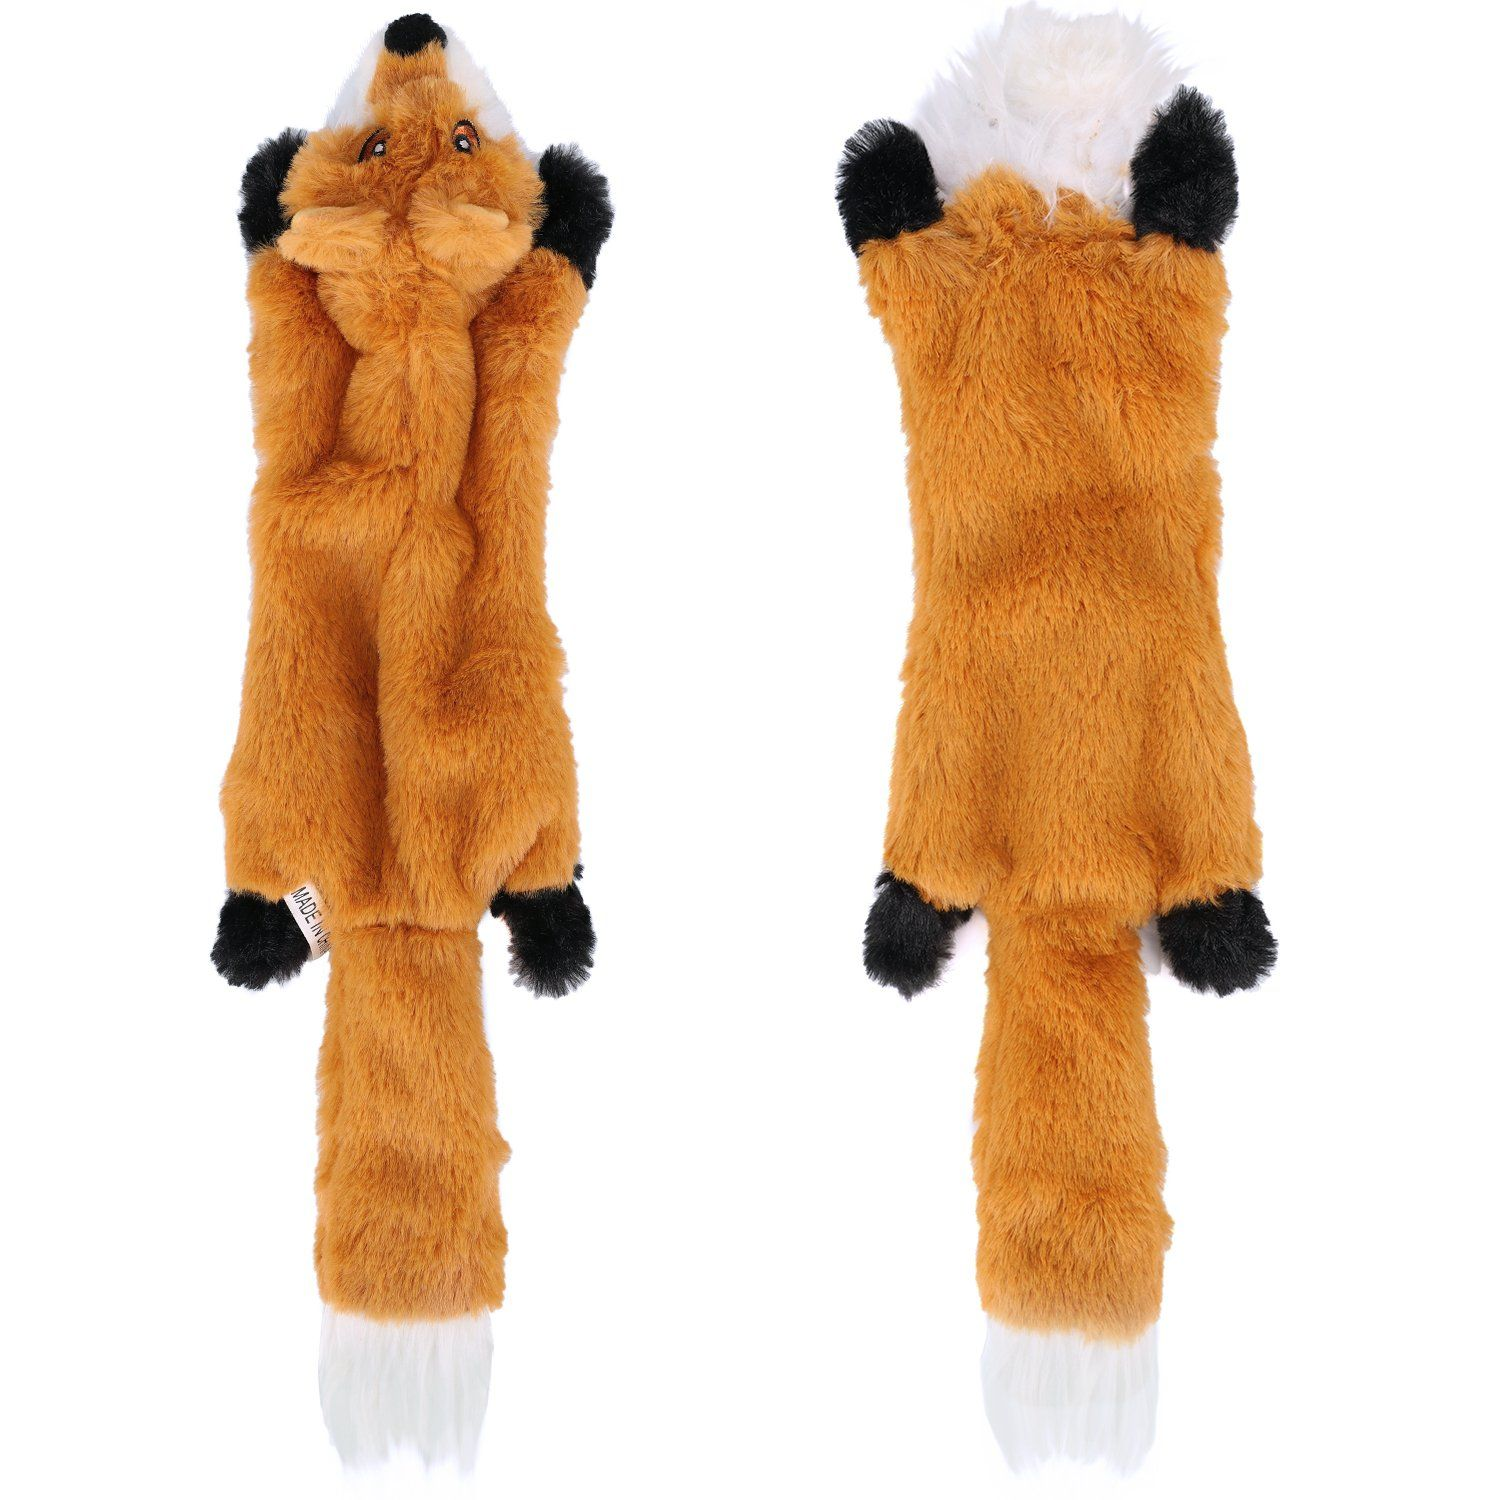 Cccompany Stuffless Dog Toys For Aggressive Chewer Durable